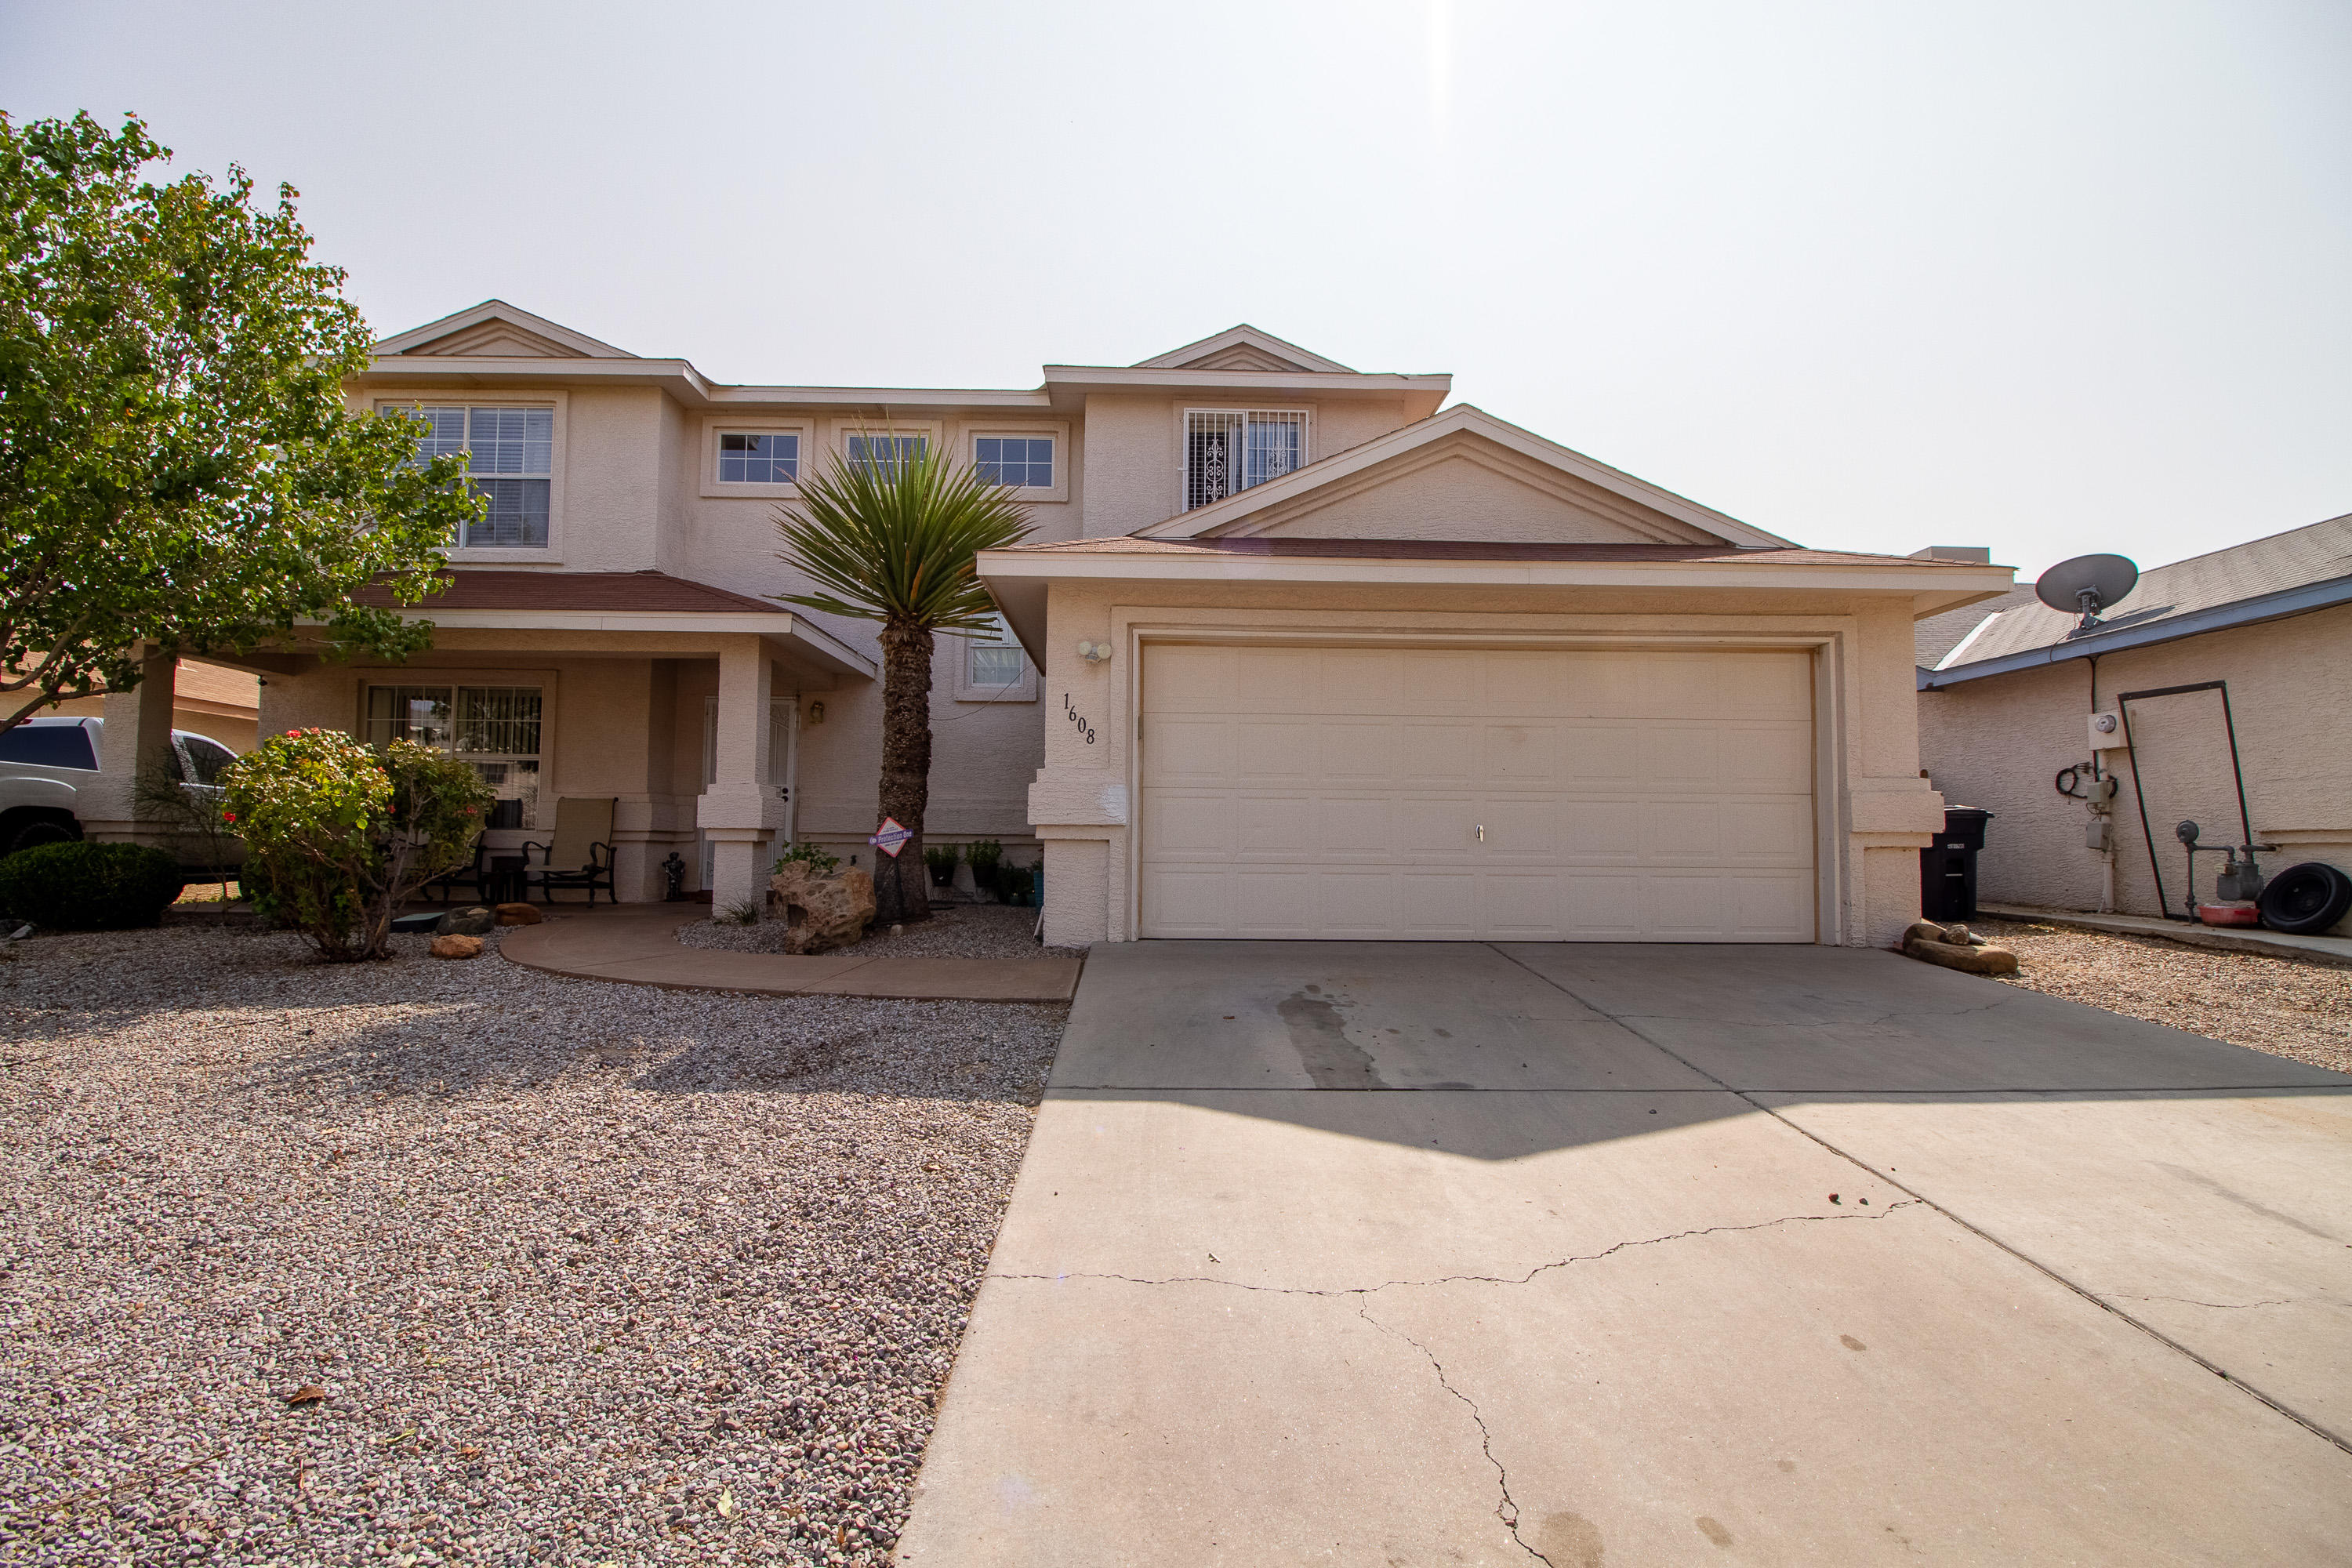 Welcome to this wonderful 2 story home with 4 Bedroom, 2 1/2 baths, with 2 living areas and a seperate formal dining room. Very well maintained with only one owner! This home has been loved by the same family for over 20 years and is ready for a new family to enjoy it along with its good sized back yard!!